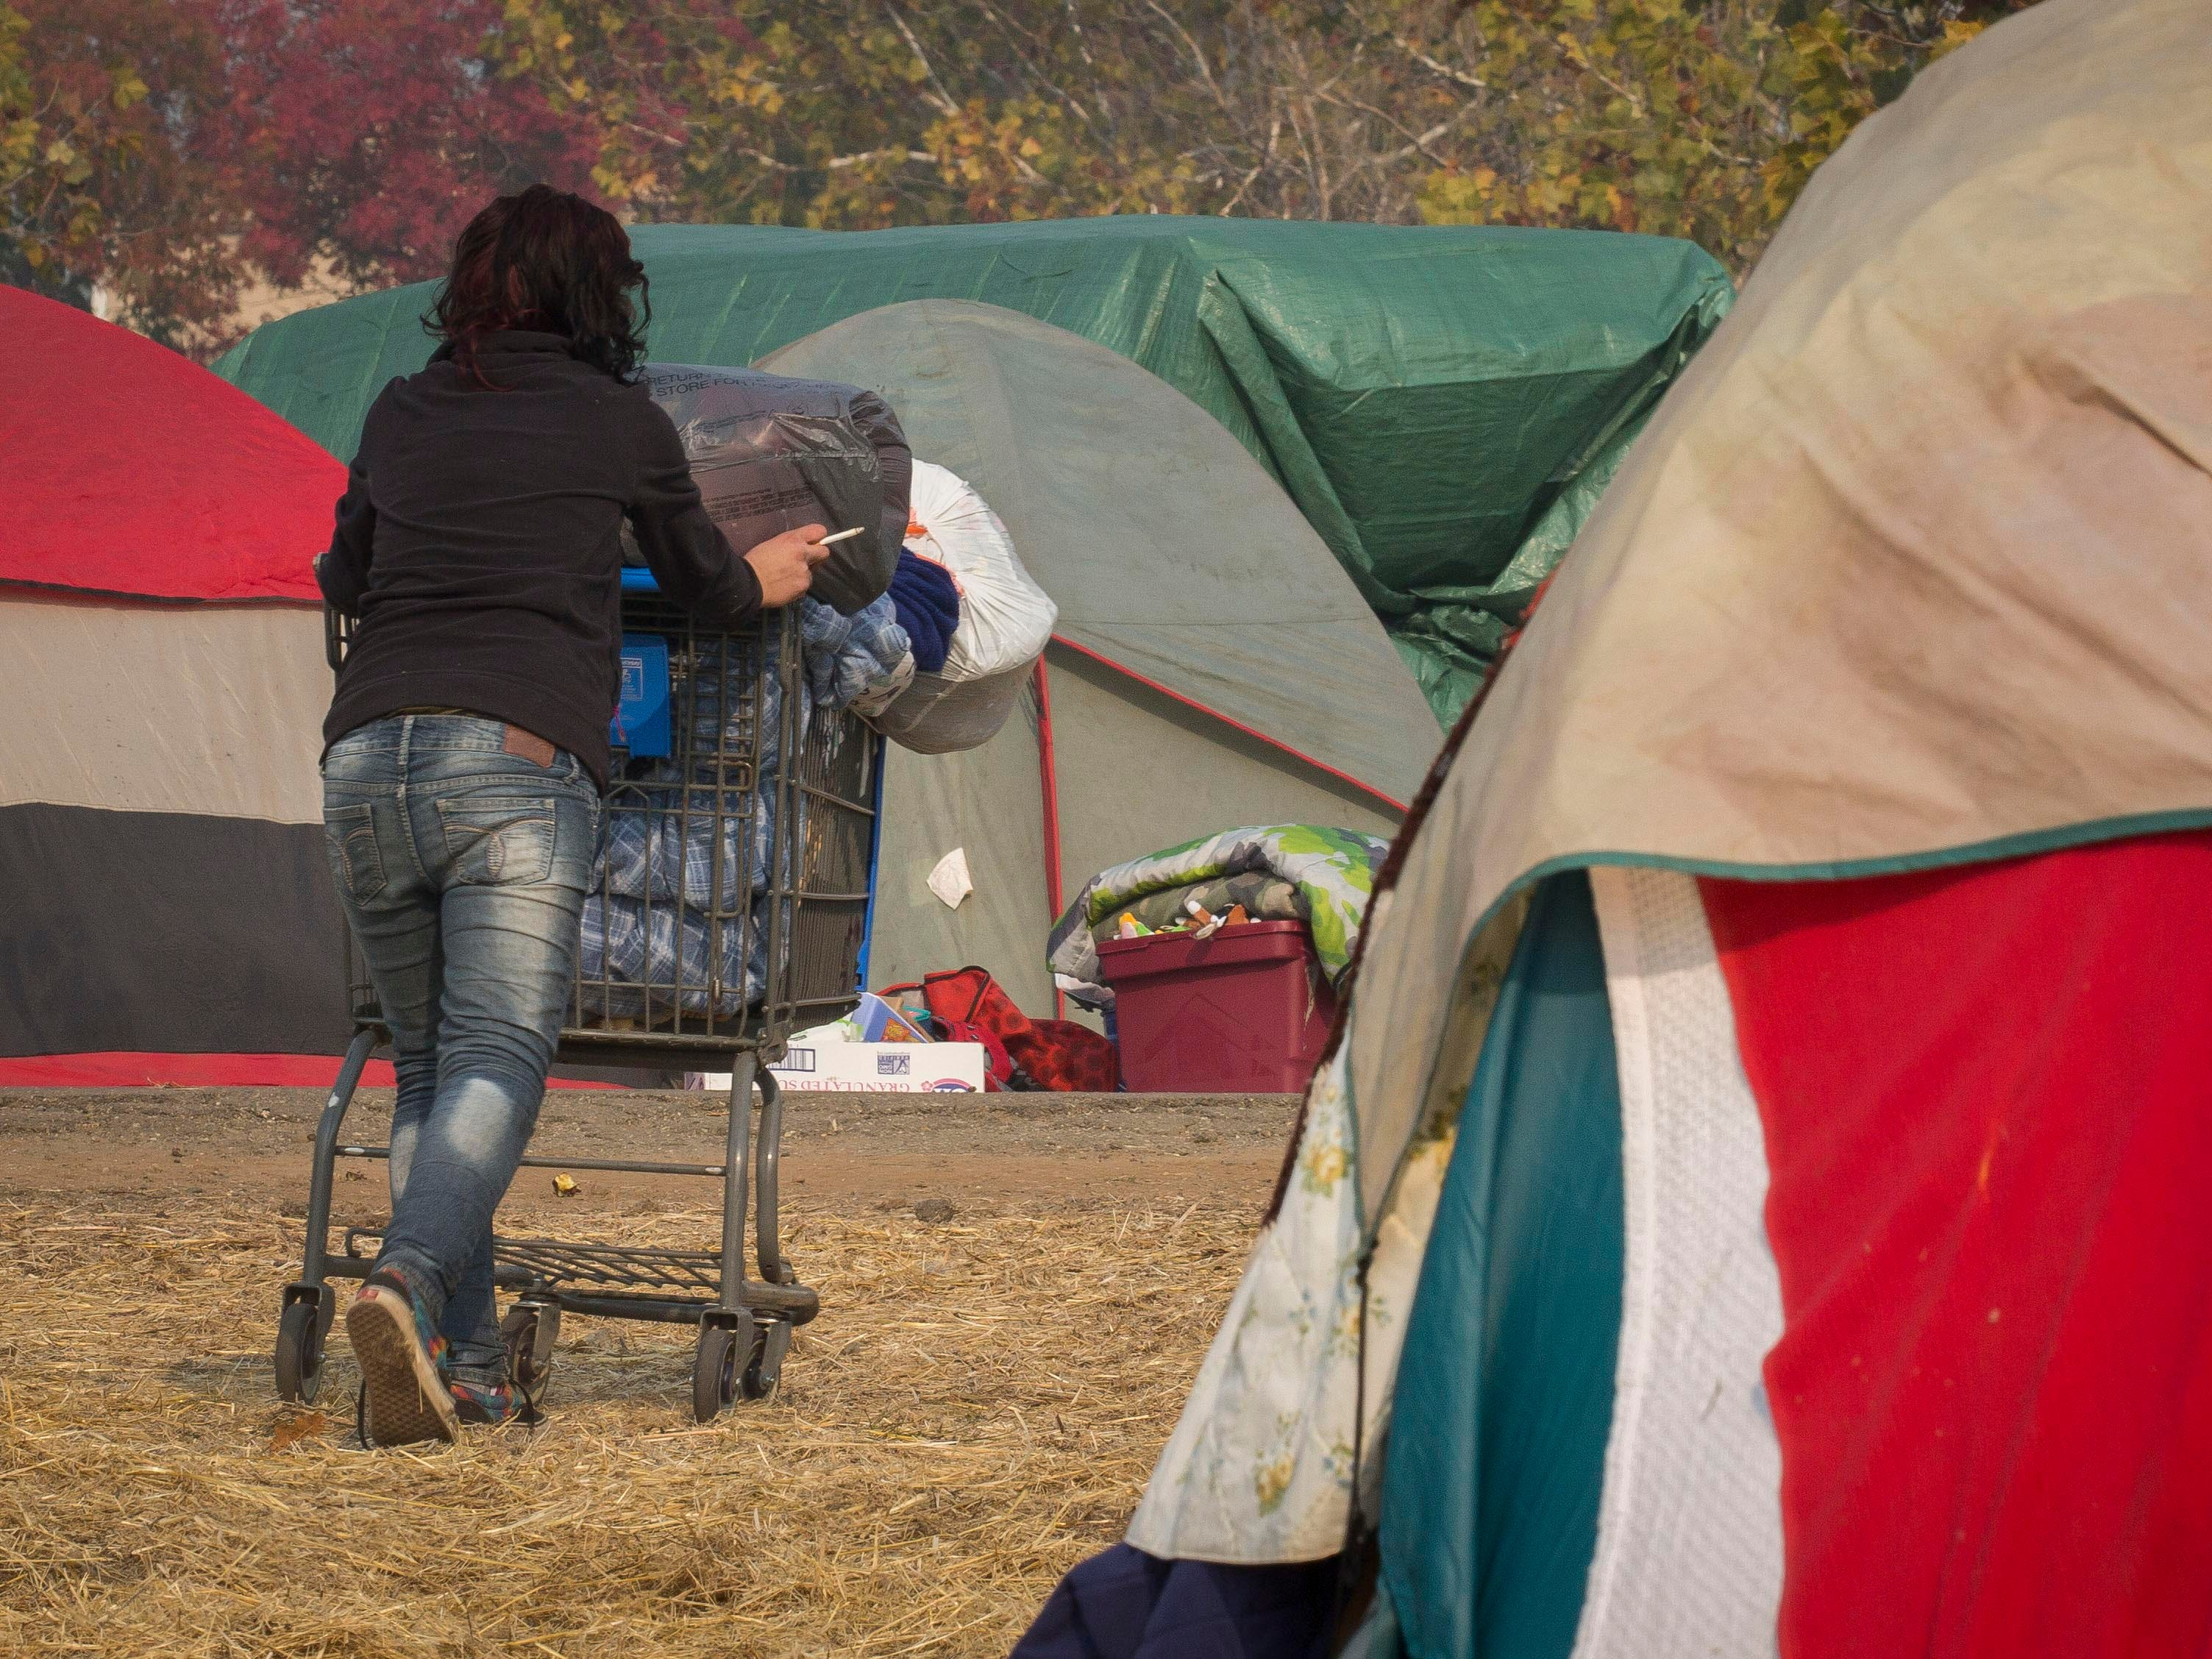 A woman uses a shopping cart to help move her belongings from the field next to the Walmart in Chico, Calif., on Nov. 18, 2018, as officials work to close the make-shift camp that formed as people fled the Camp Fire. FEMA, Red Cross and other agencies were helping to place the remaining people at the camp.